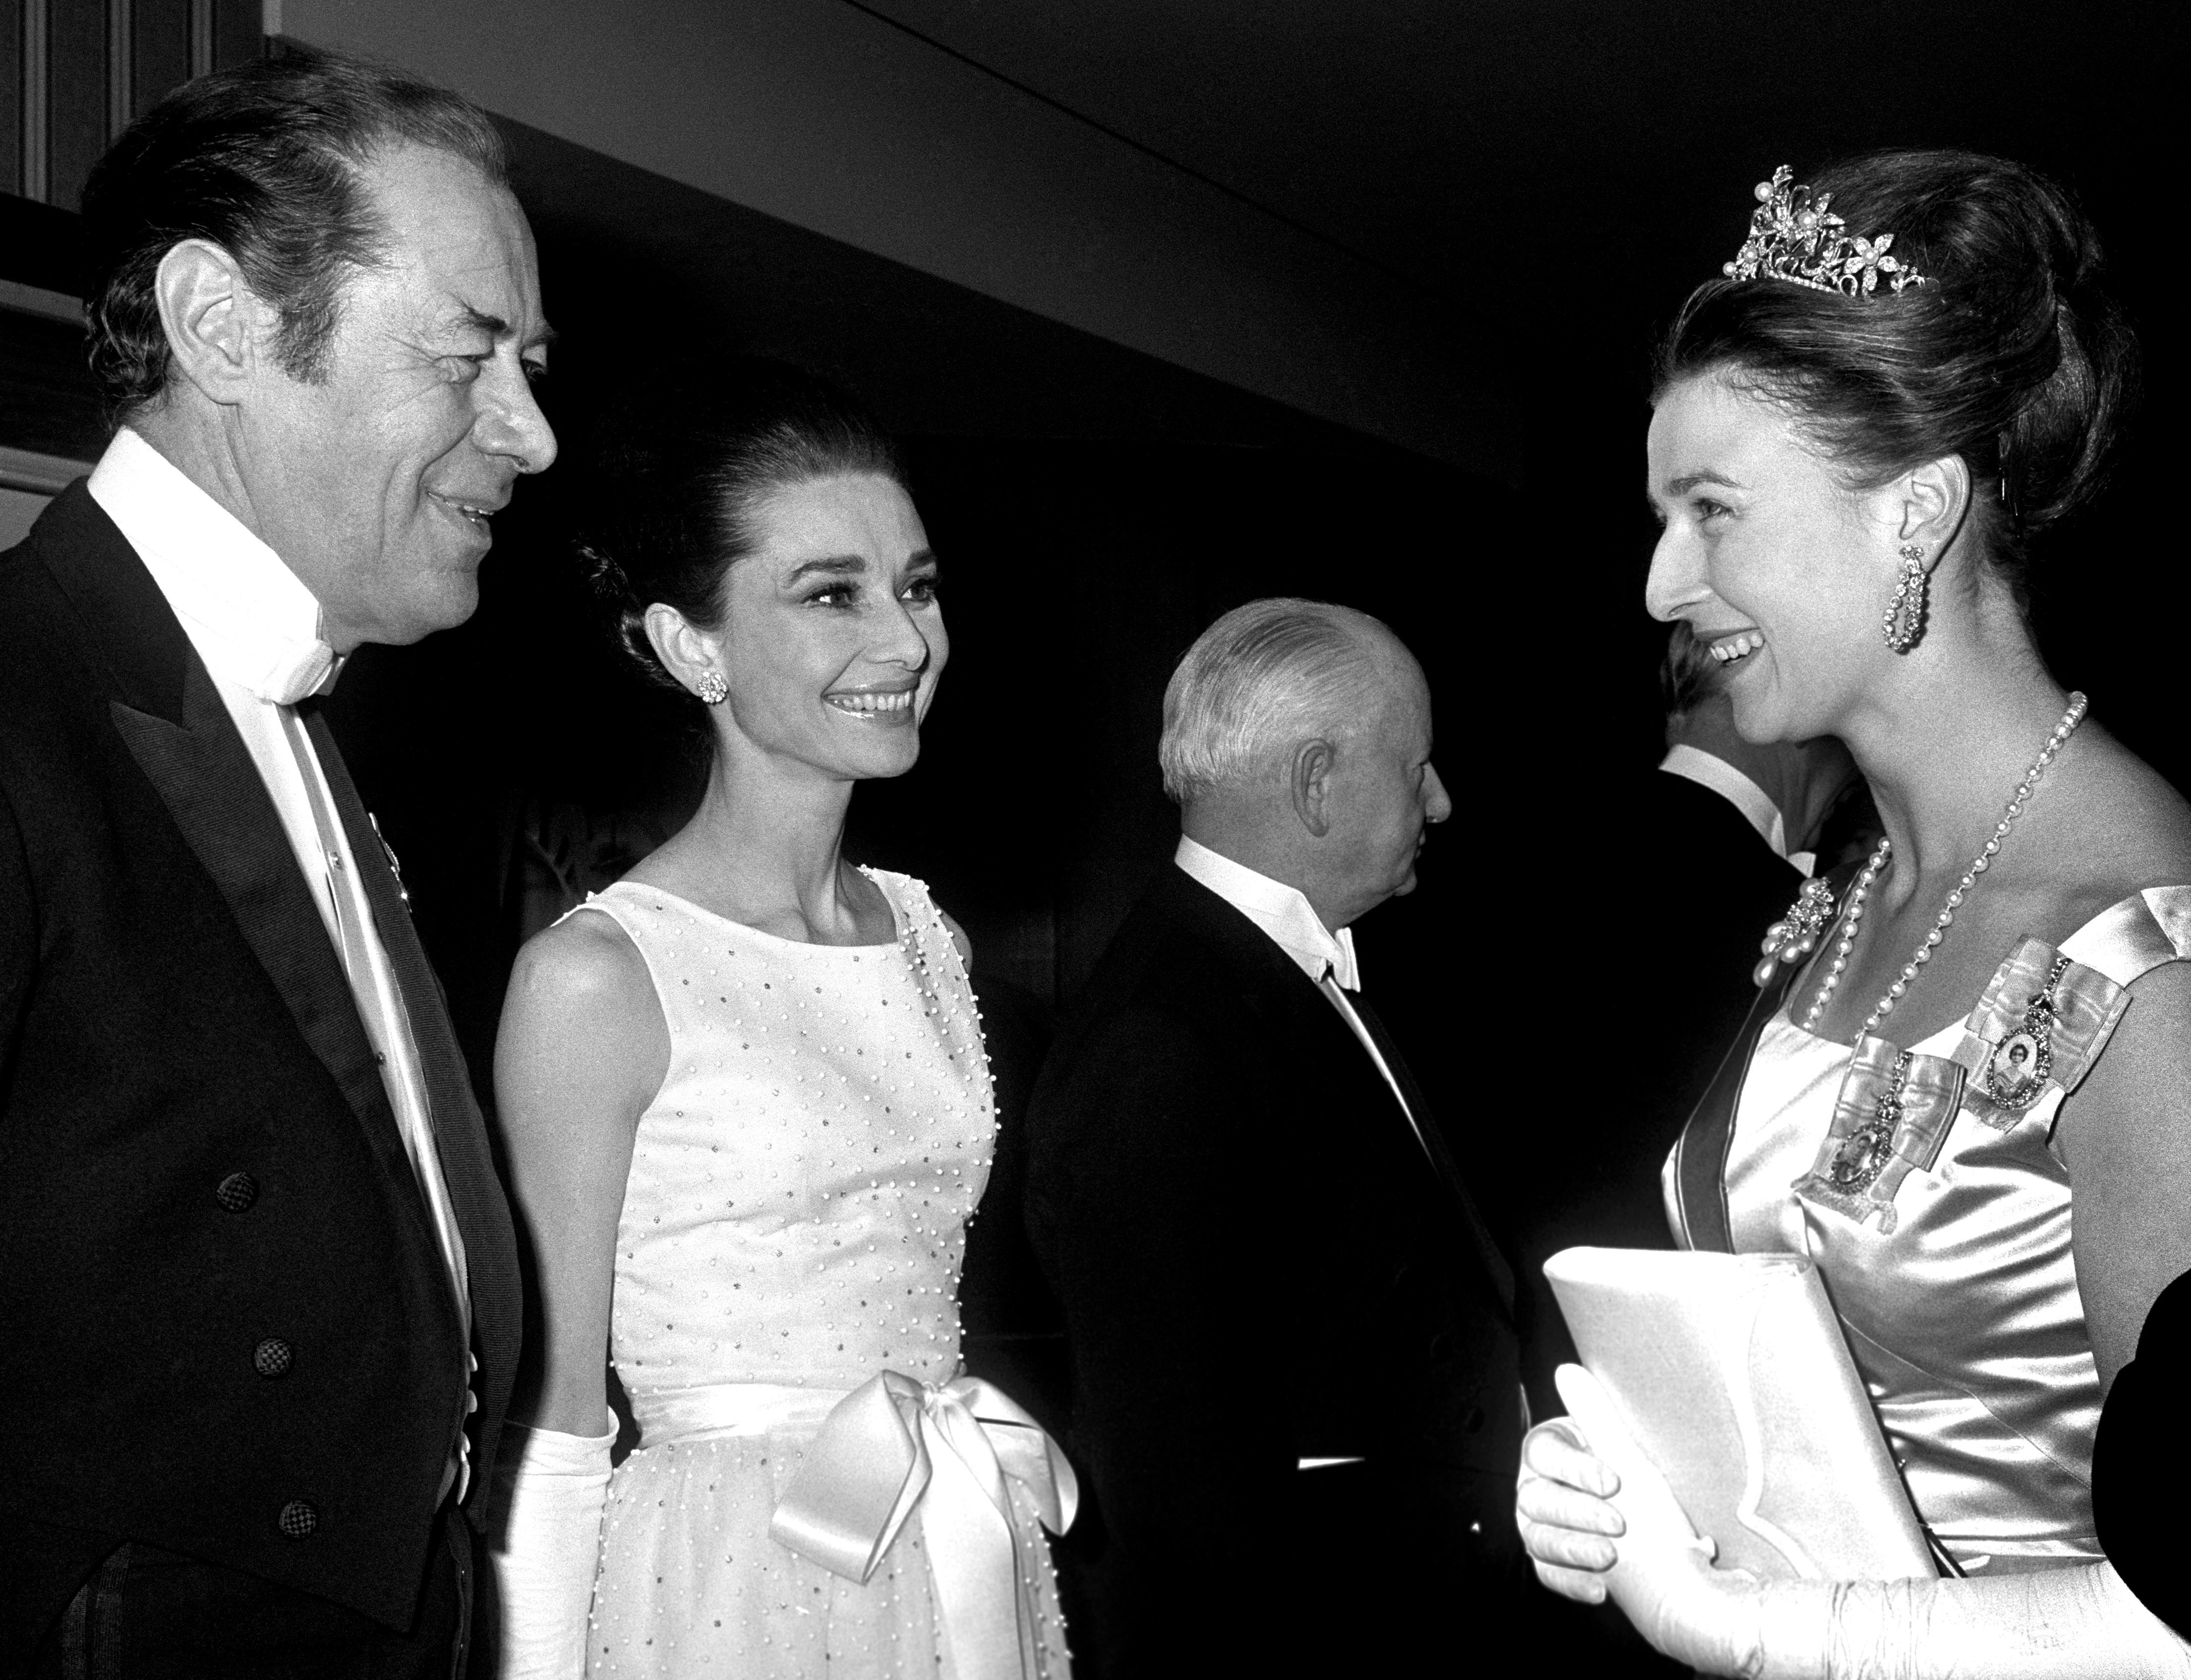 Rex Harrison and Audry Hepburn meet Princess Alexandra at the London premiere of My Fair Lady, January 1965.